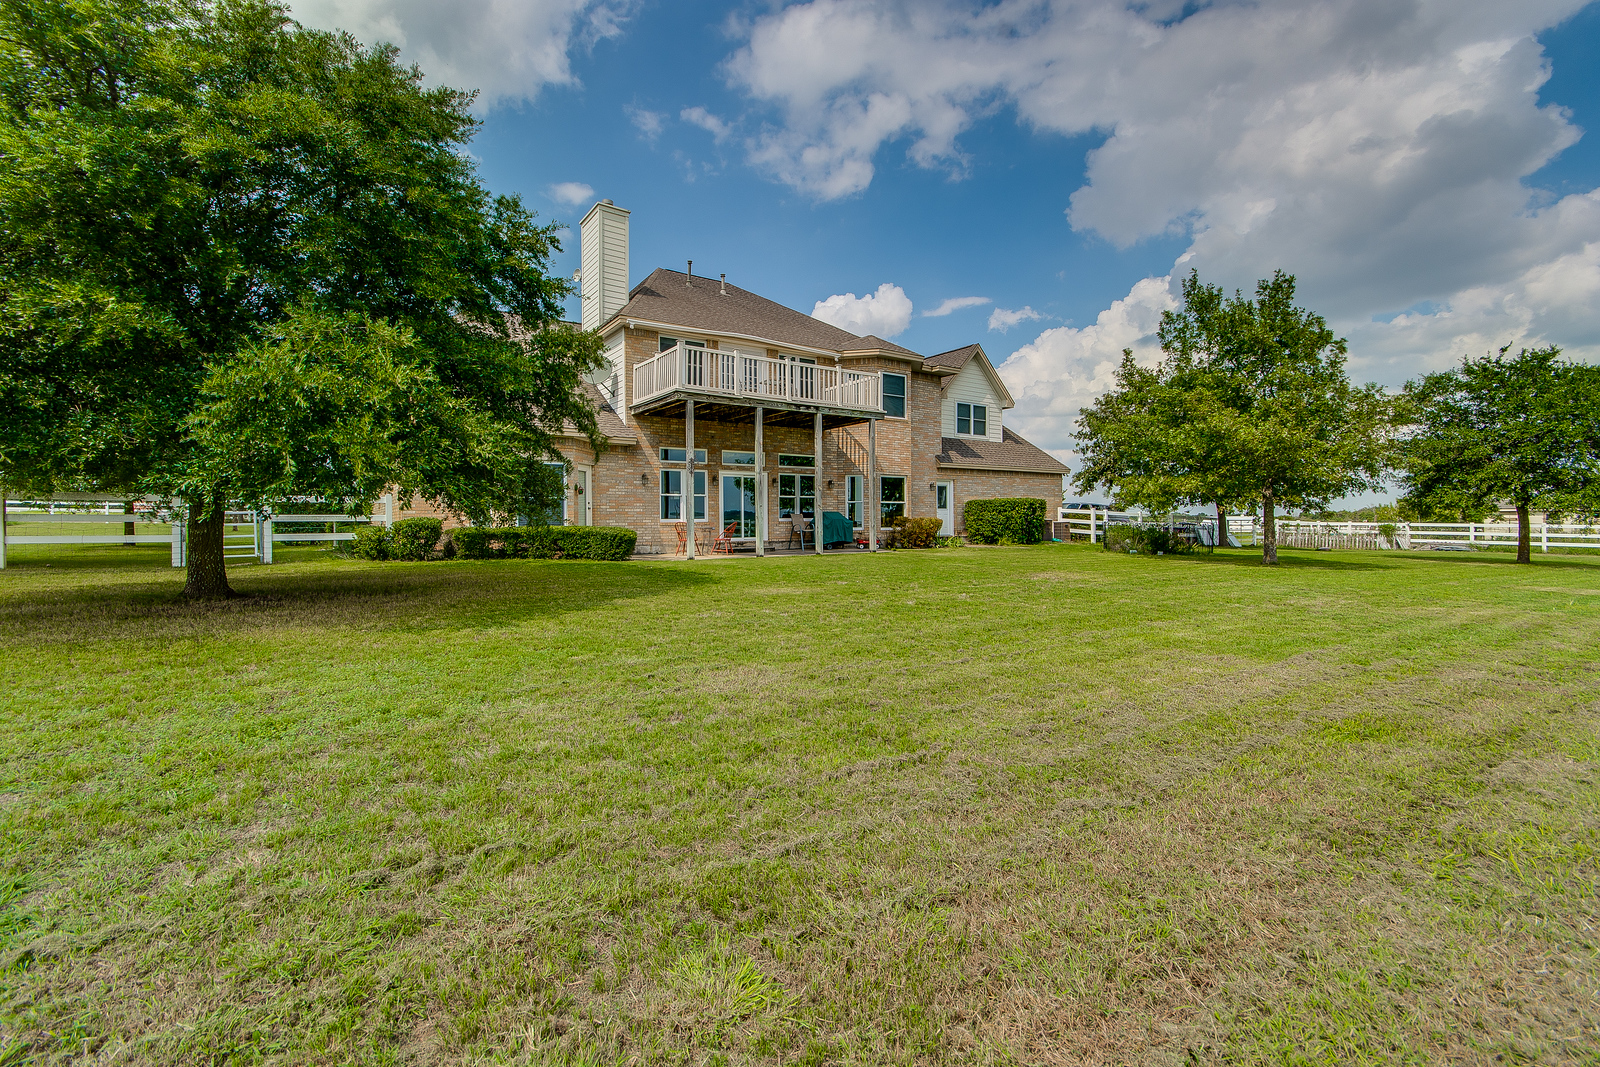 acreage home for sale 33104 Equestrian way